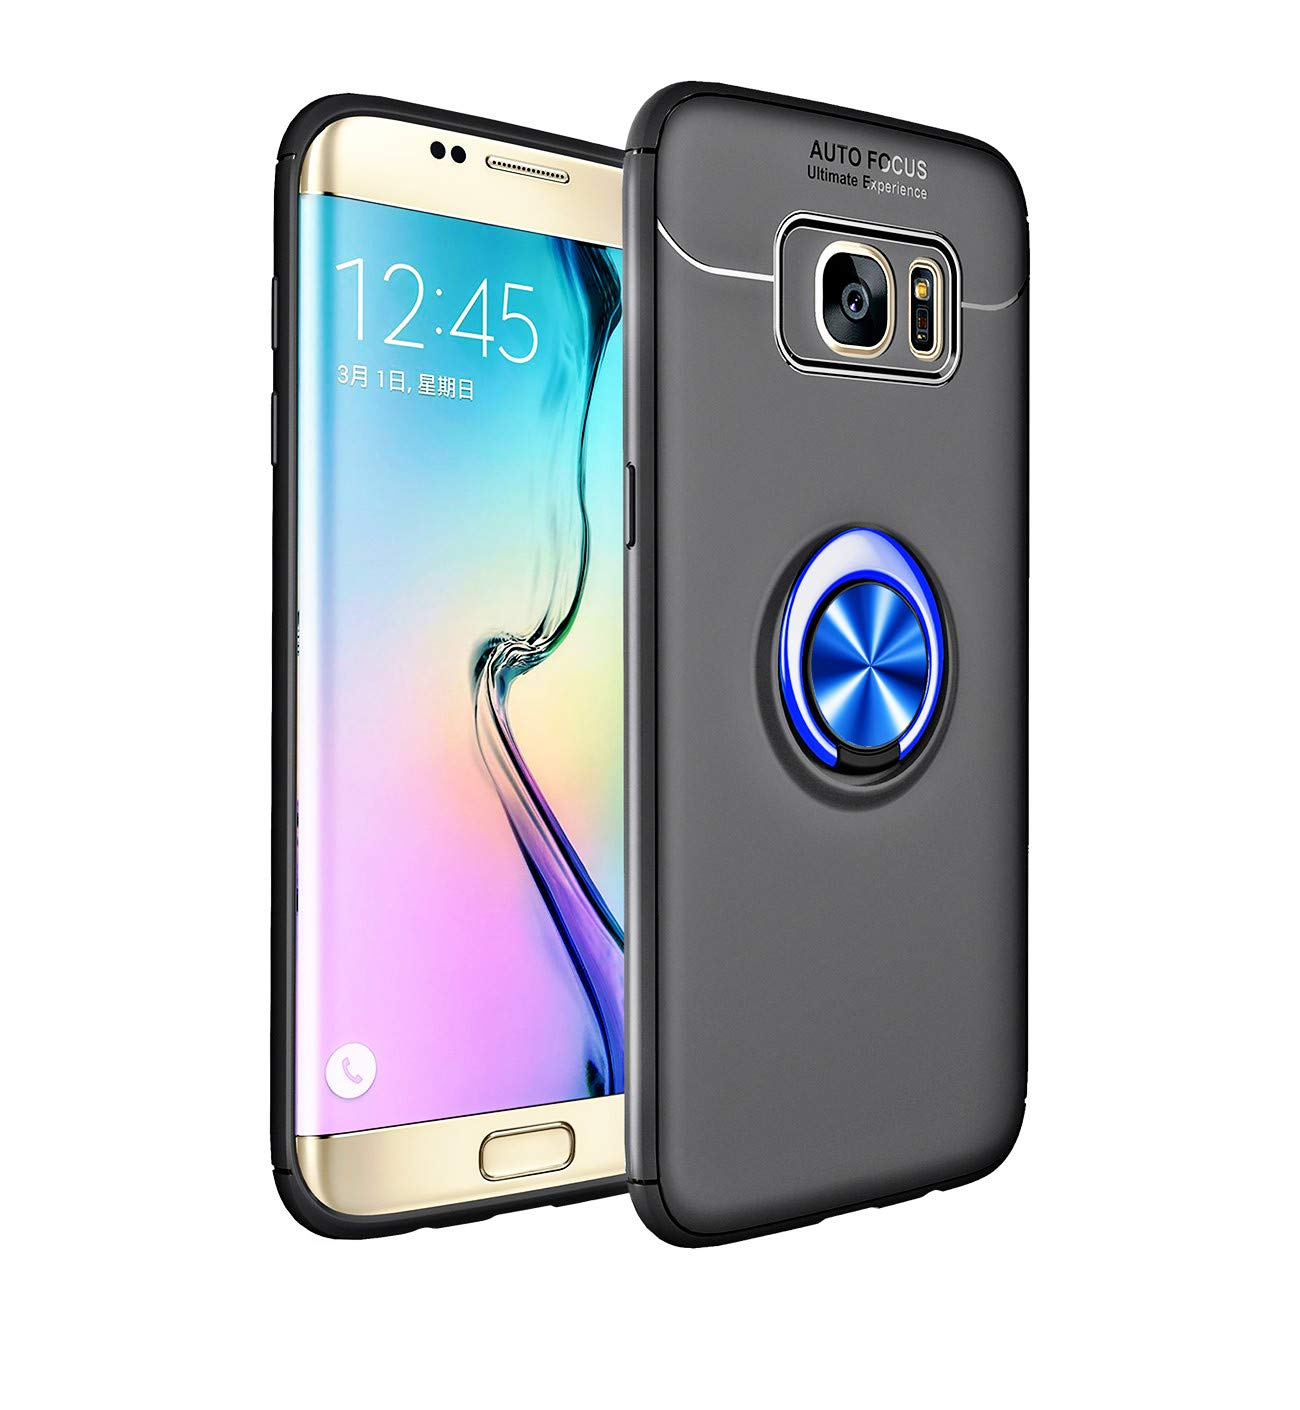 Heavy Armor Galaxy S7 Edge Case Ring Holder Kickstand Magnetic Base Dual Layer Car Mount Rotable Dual Layer Protective Hard Shell PC Bumper Galaxy S7 Edge (4, Galaxy S7 Edge) by 54lany